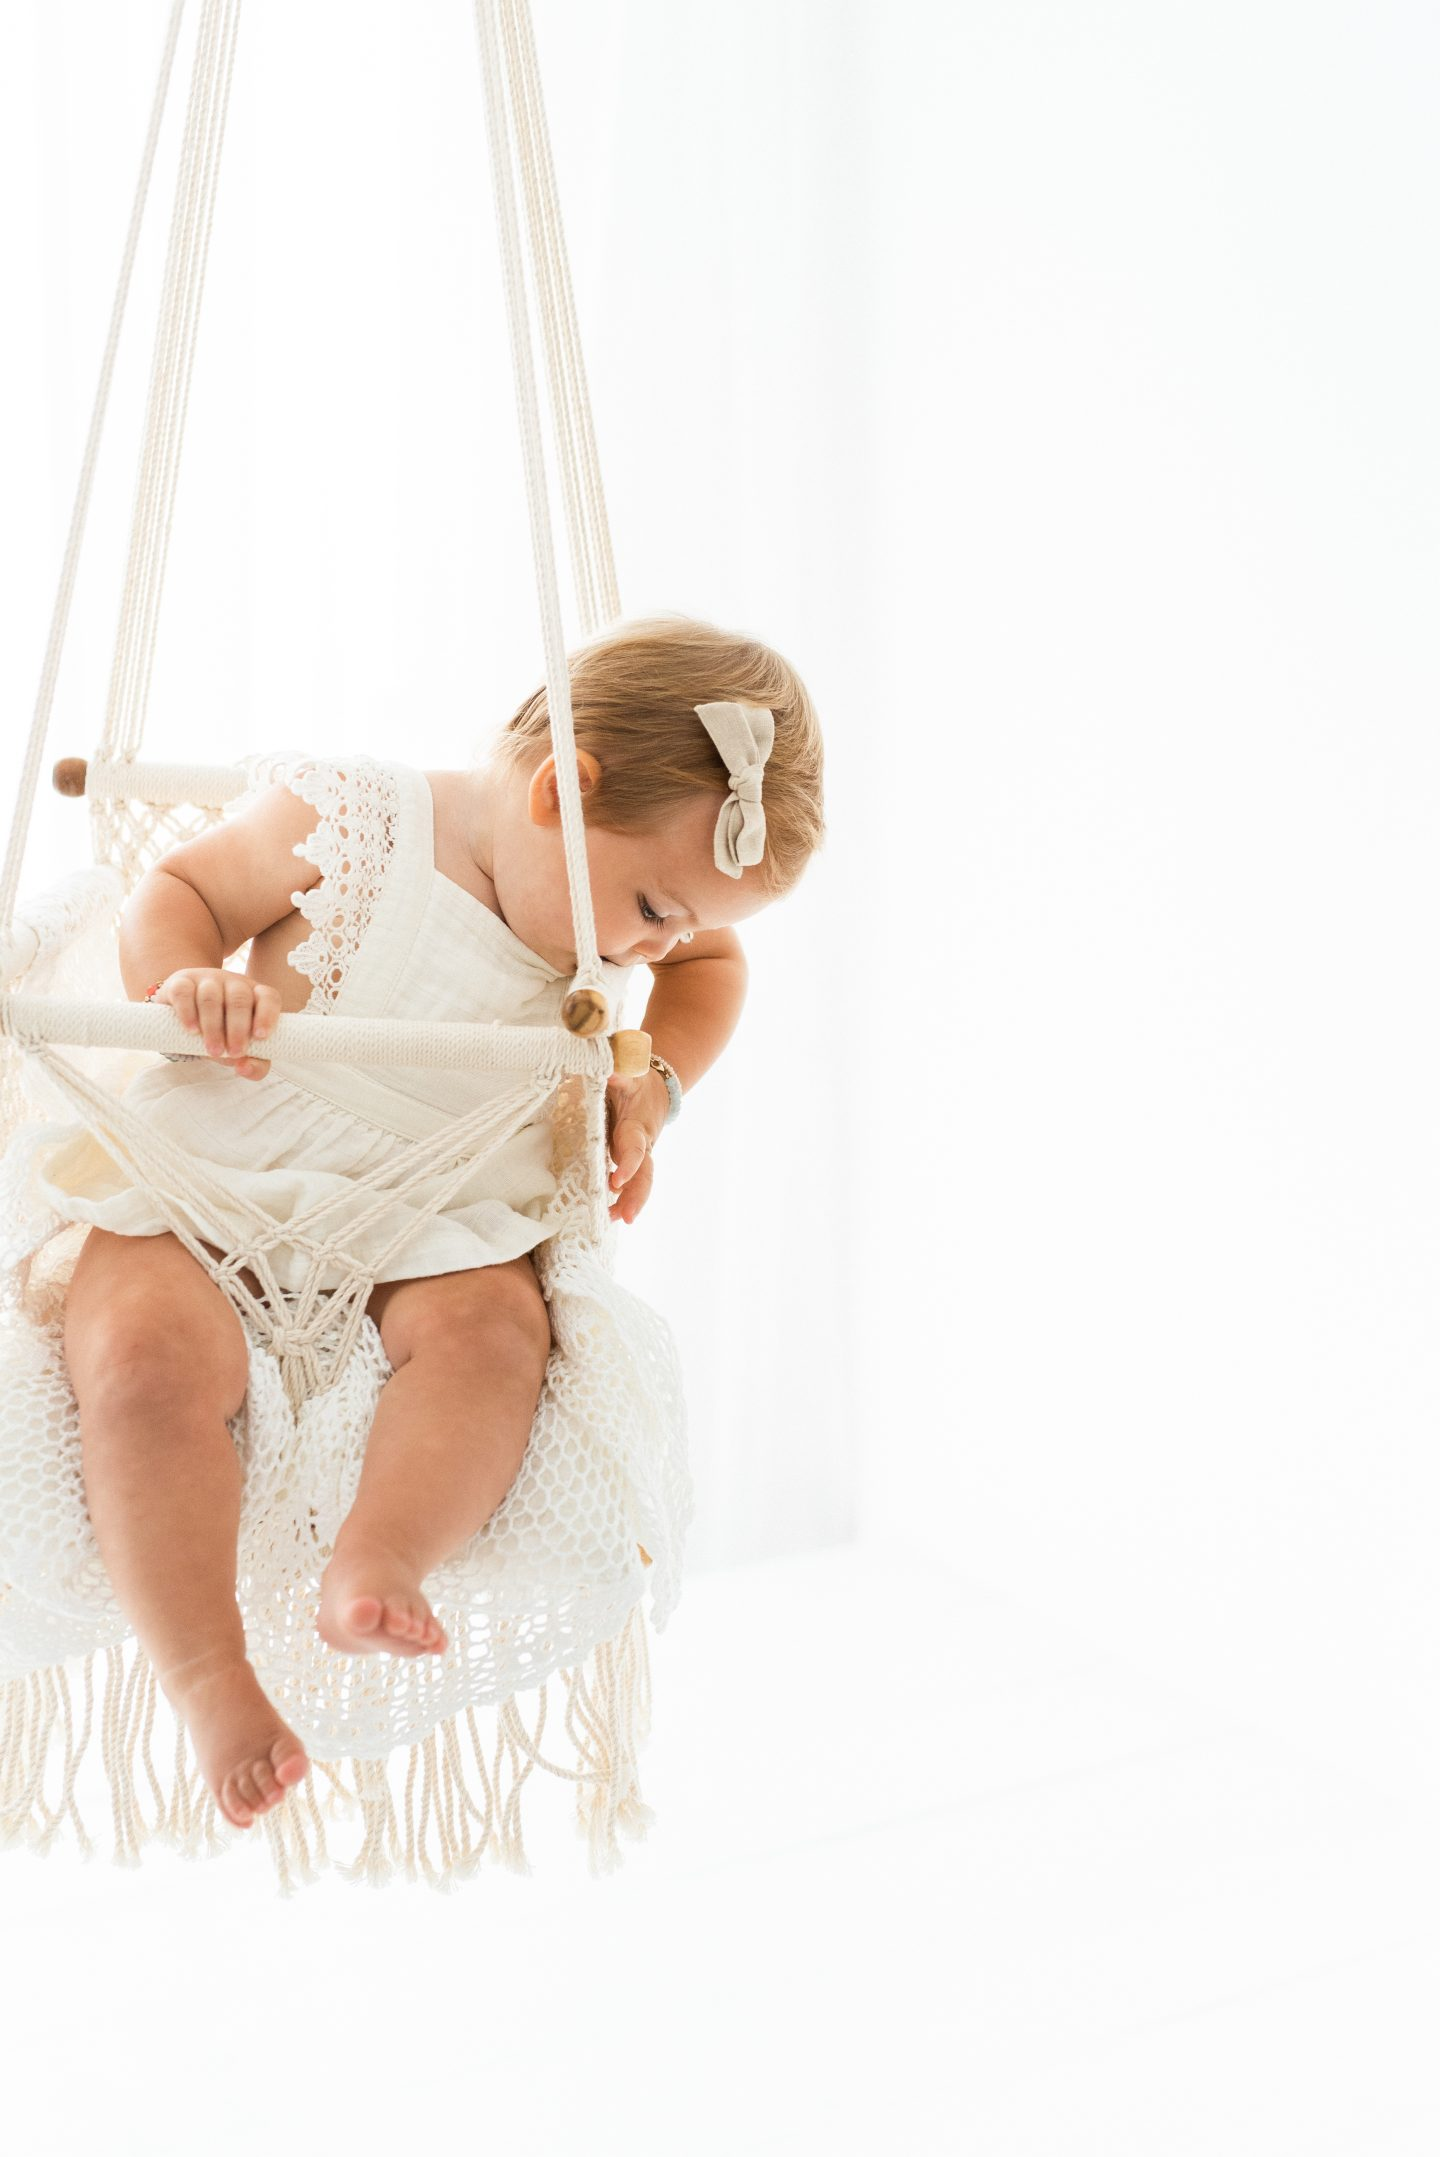 One Year Old Milestones by popular San Diego motherhood blog, Navy Grace: image of a baby girl wearing a white dress and sitting in a macrame swing.